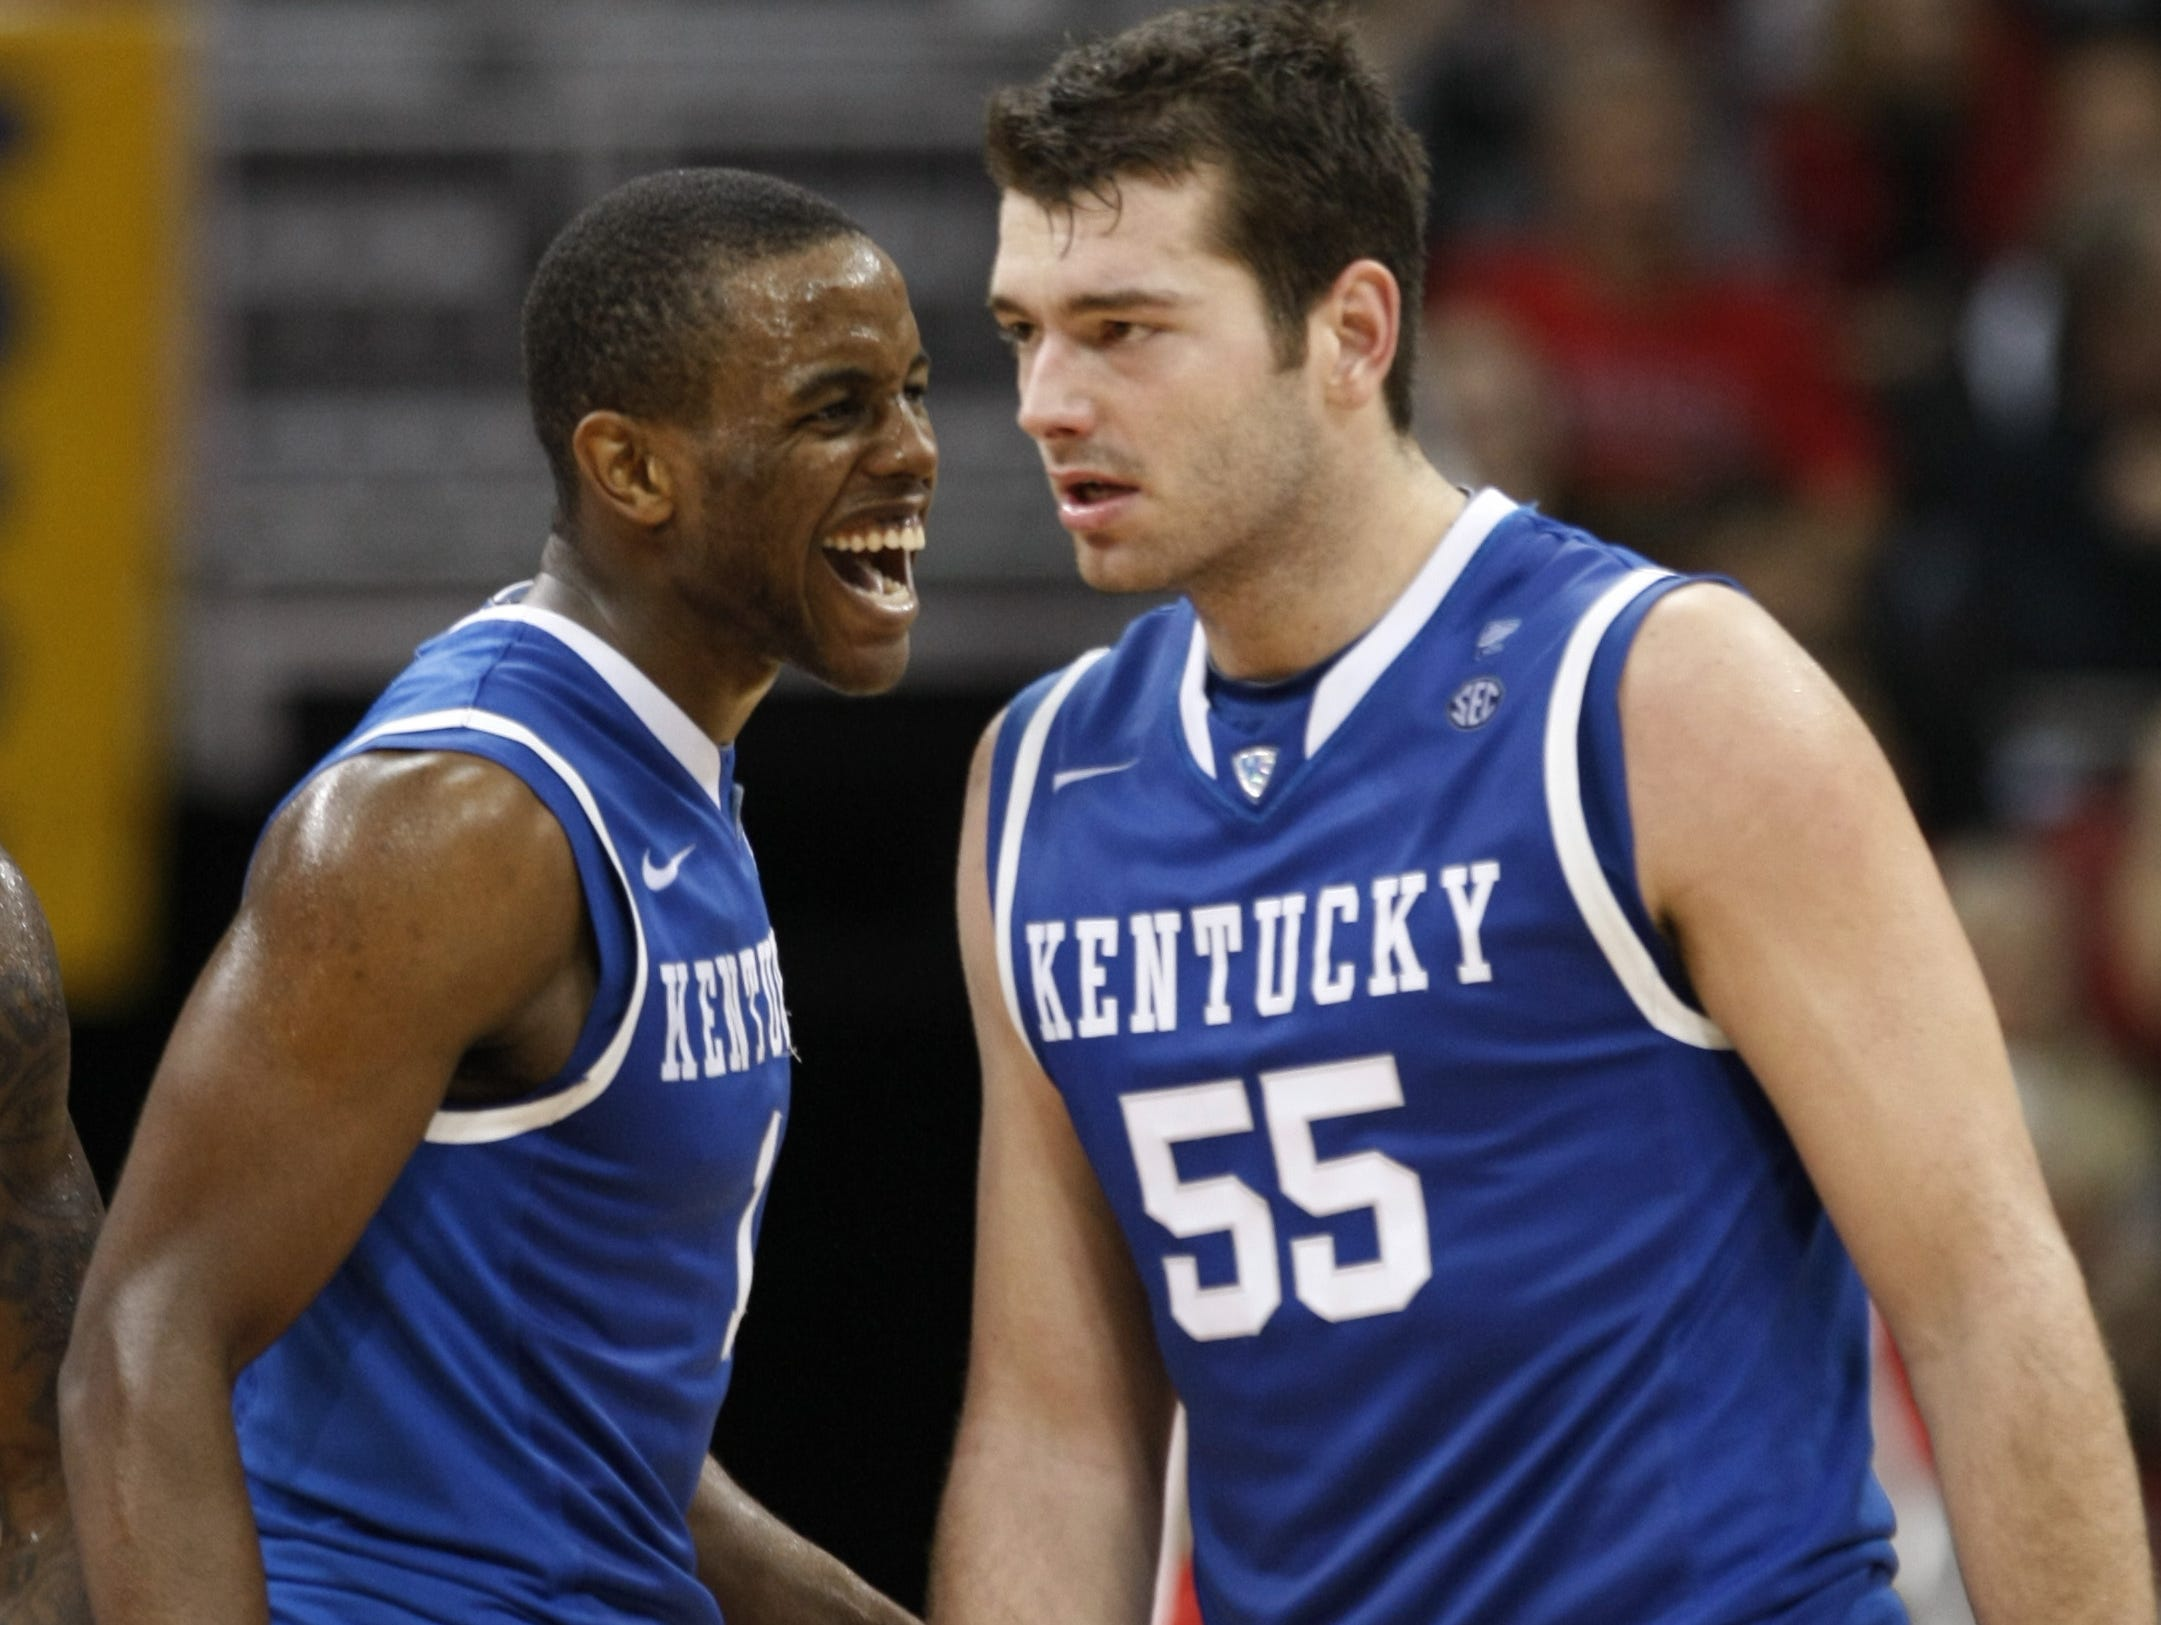 Kentucky's Josh Harrellson (55) is congratulated by teammate Darius Miller after hitting a shot during the second half of an NCAA college basketball game against Louisville in Louisville, Ky., Friday, Dec. 31, 2010. Harrellson had 23 points and 14 rebounds in his team's 78-63 win. (AP Photo/Ed Reinke)